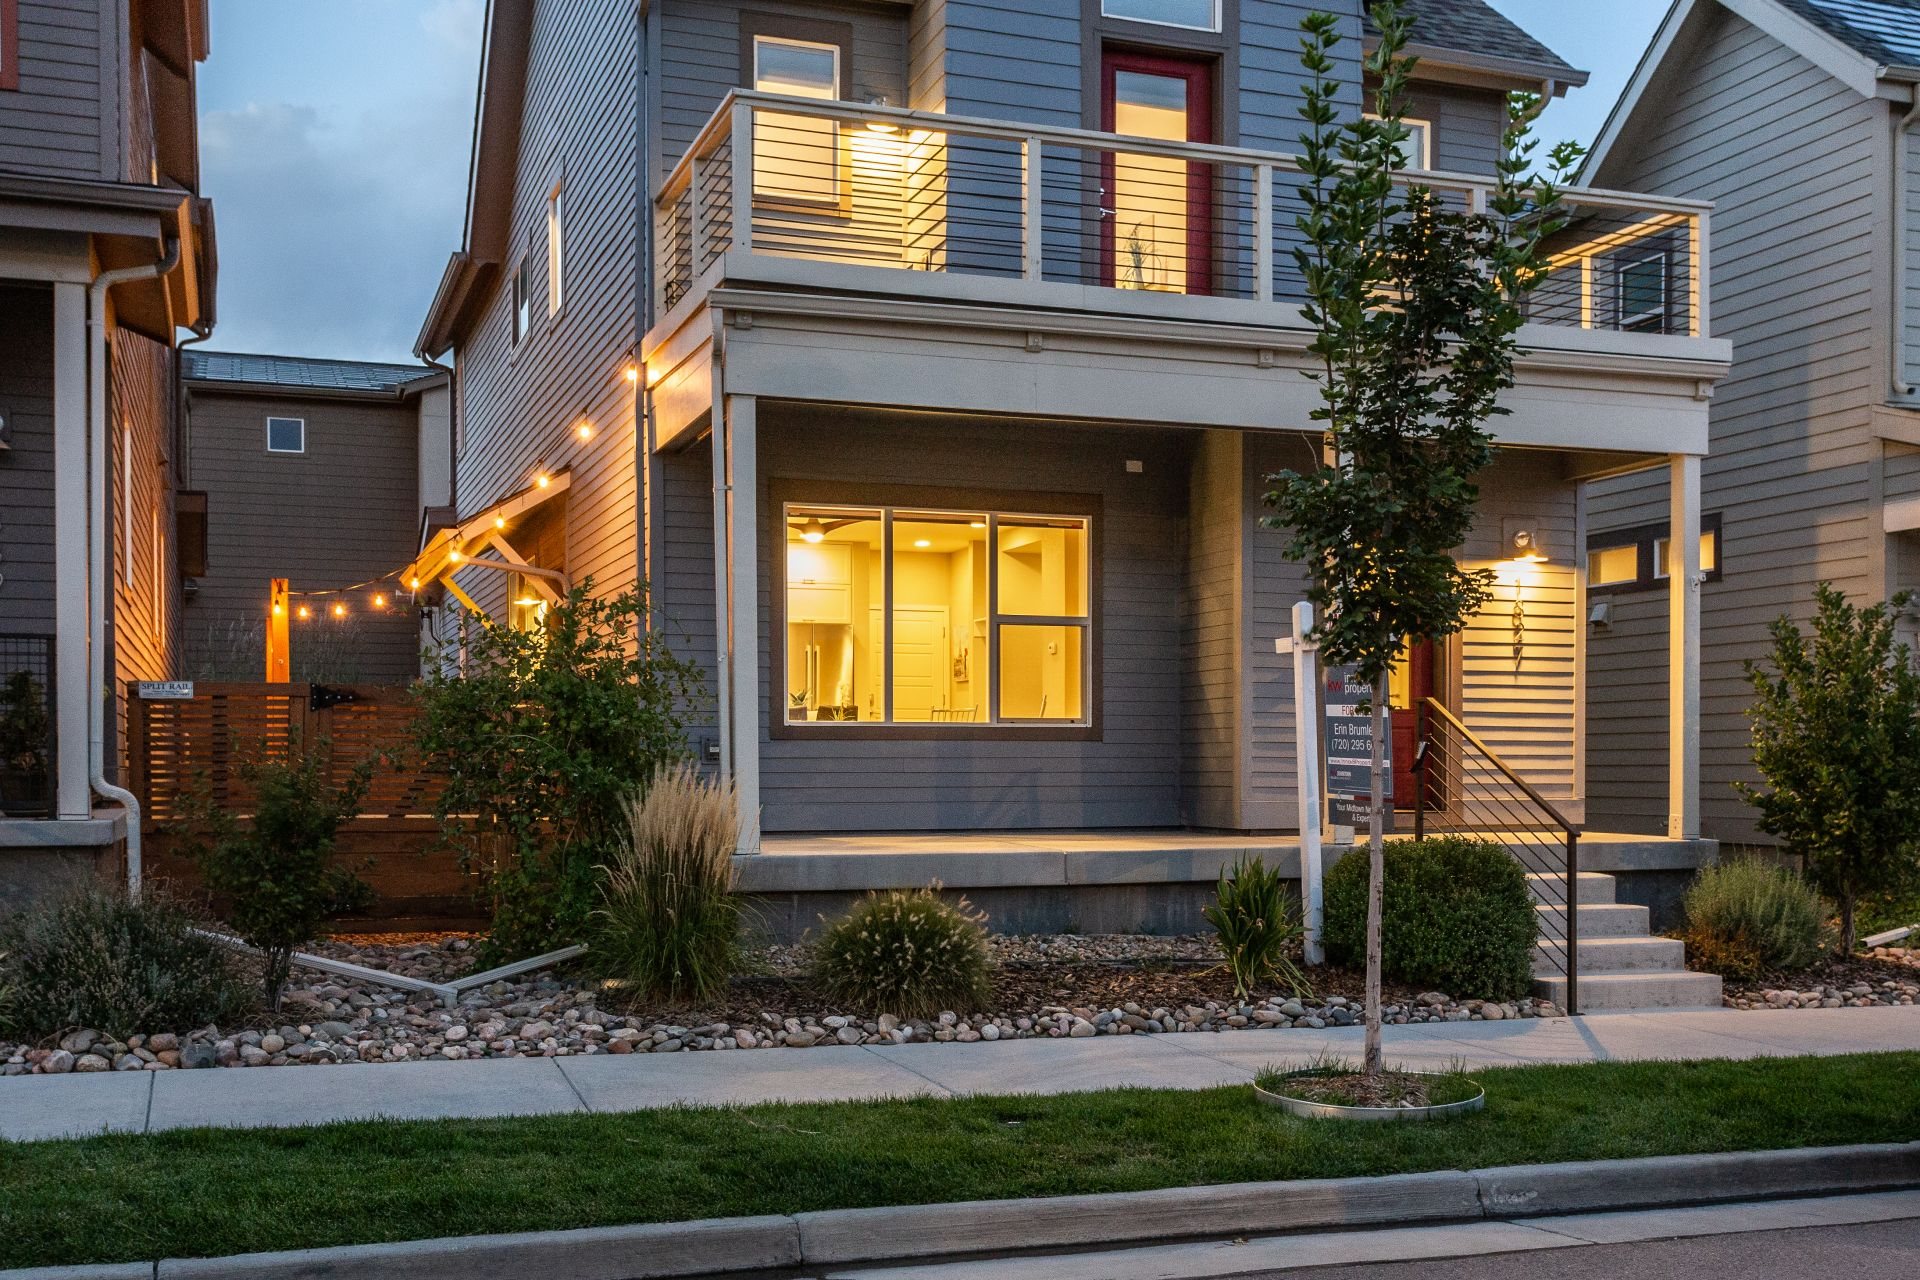 JUST LISTED – 1827 W. 66th Ave. Denver, CO 80221